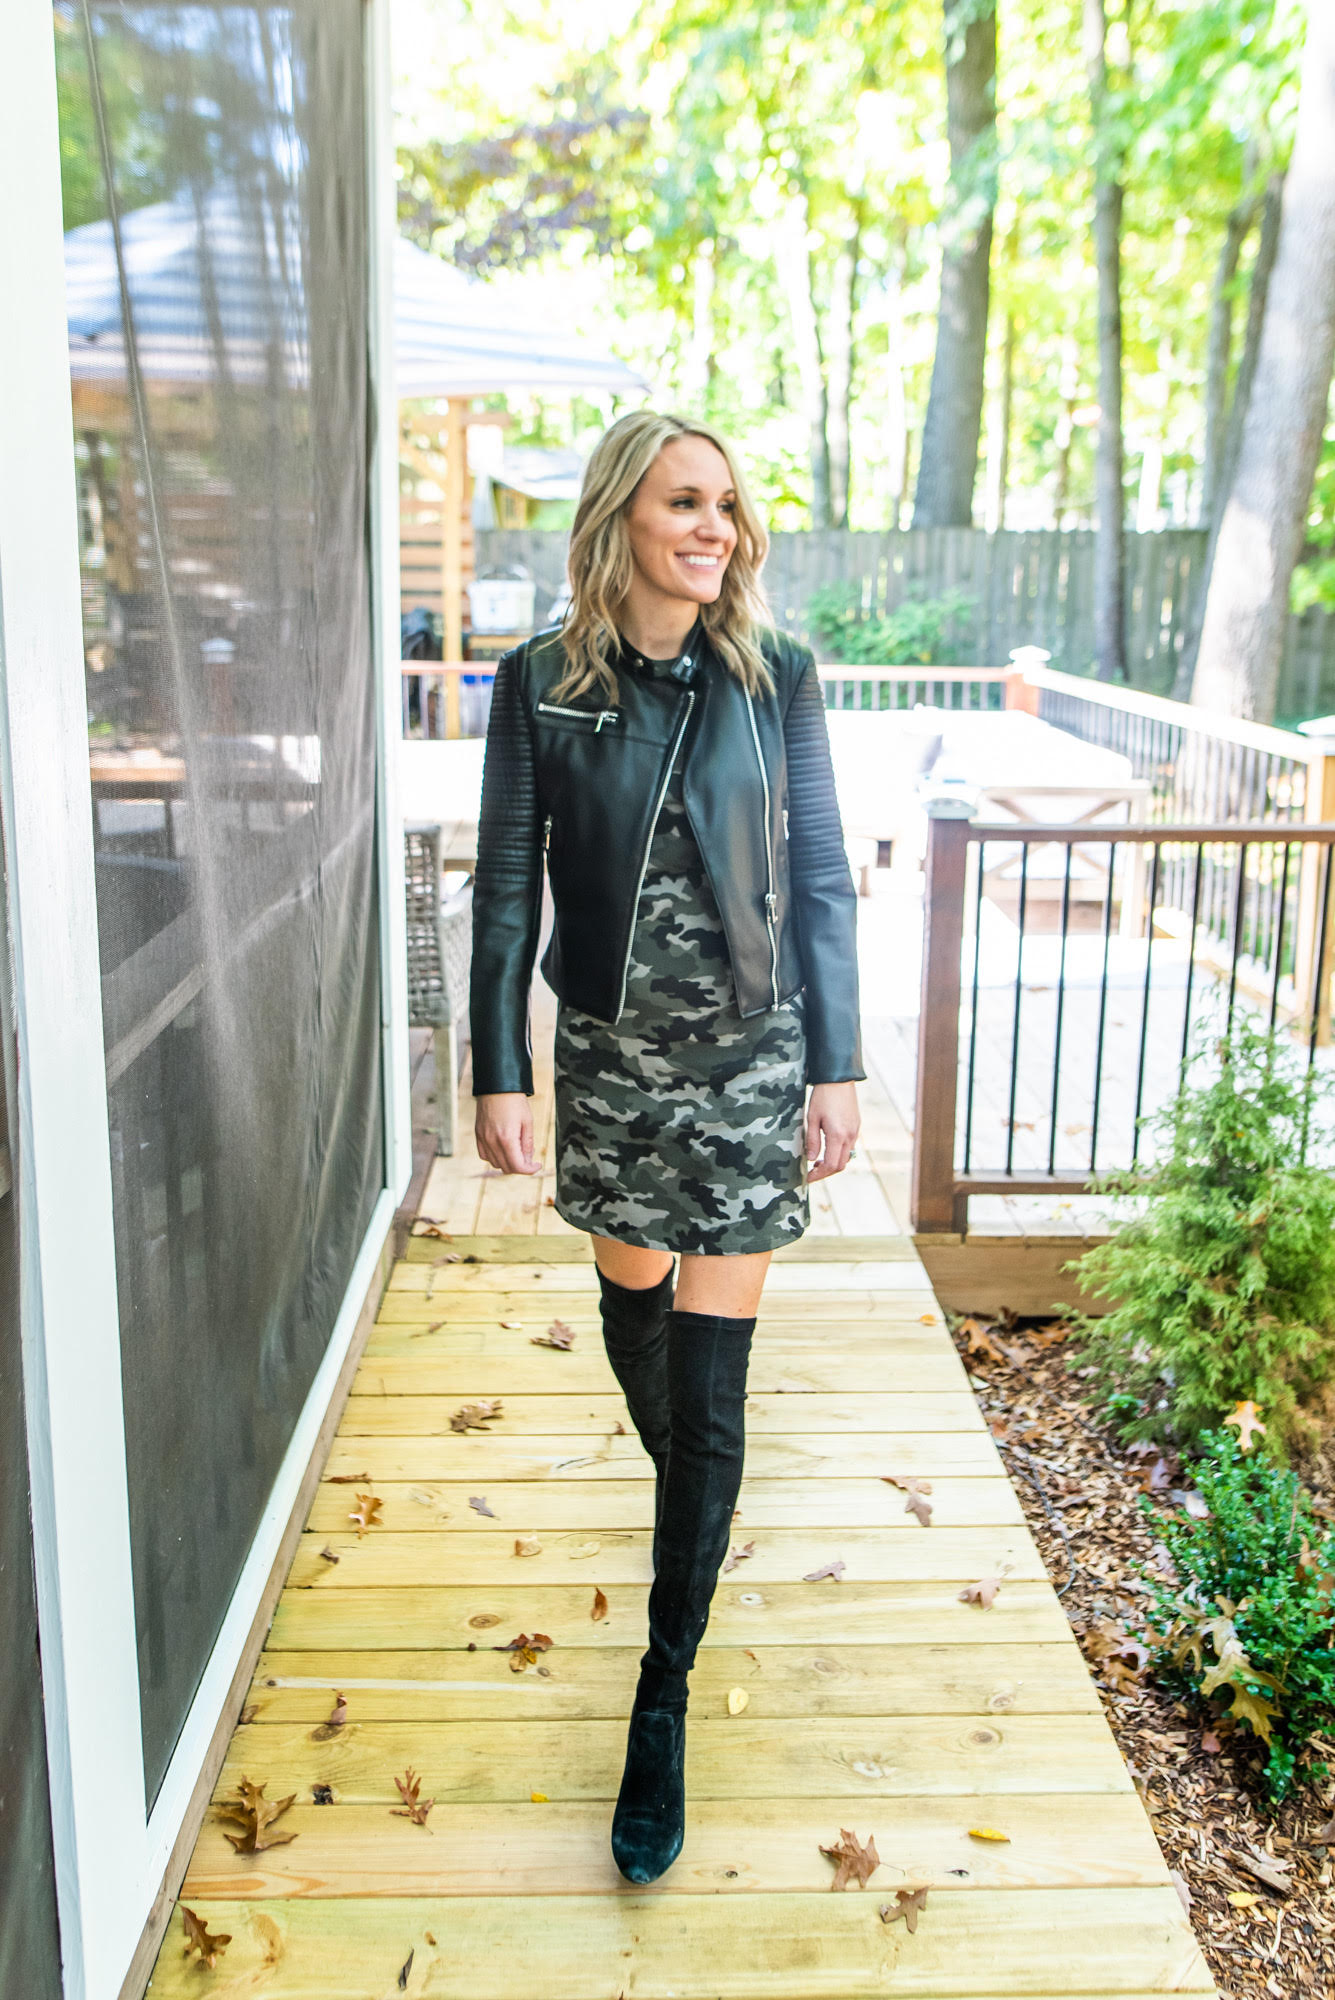 fashionable preppy mom in camo dress |Fall Clothing by popular Michigan fashion blog, The House of Navy: image of a woman wearing the Duffield Lane Amber Dress with a leather jacket and black suede over the knee boots.